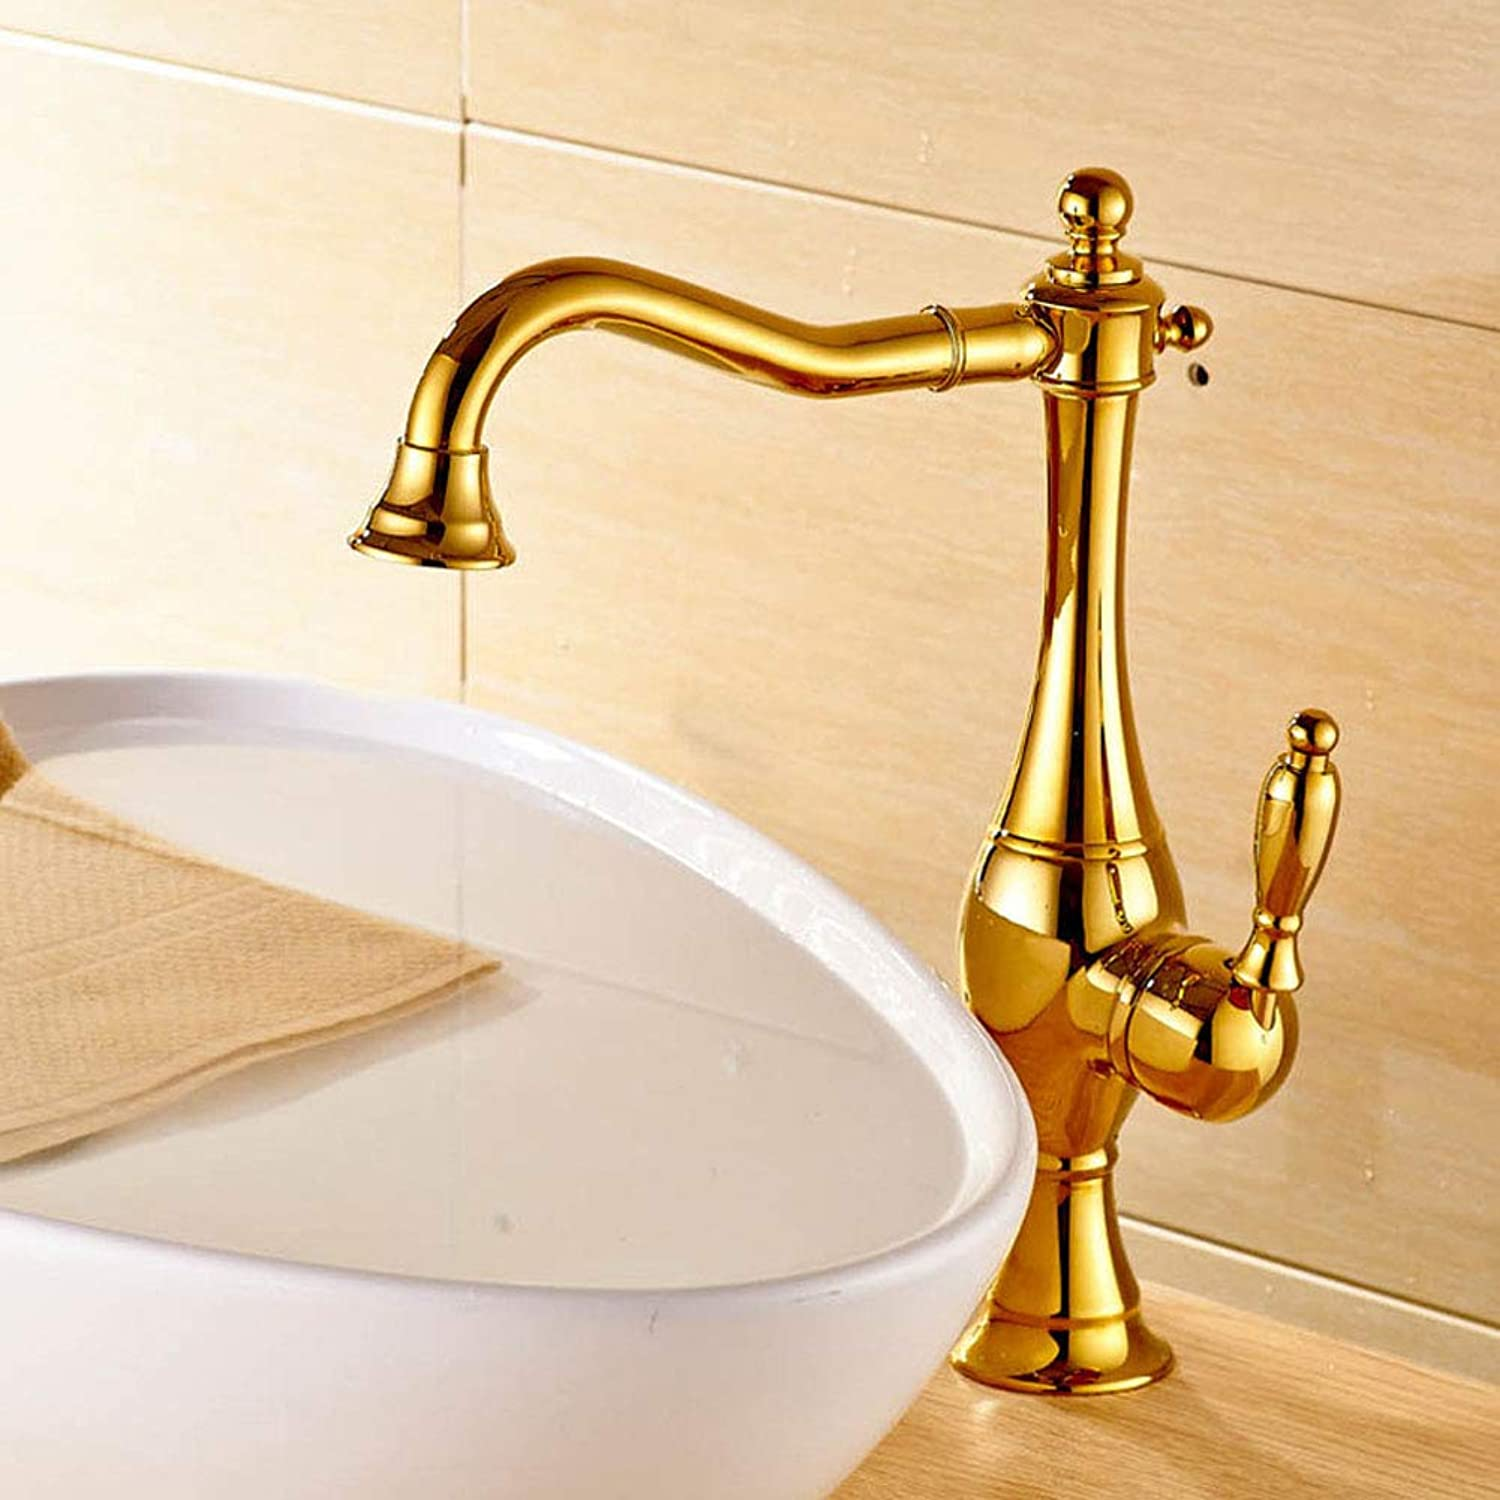 360°Swivel European Style Retro Style Kitchen Mixer Tap all Brass Plating Hot Cold Kitchen Sink Faucet,goldenFaucet